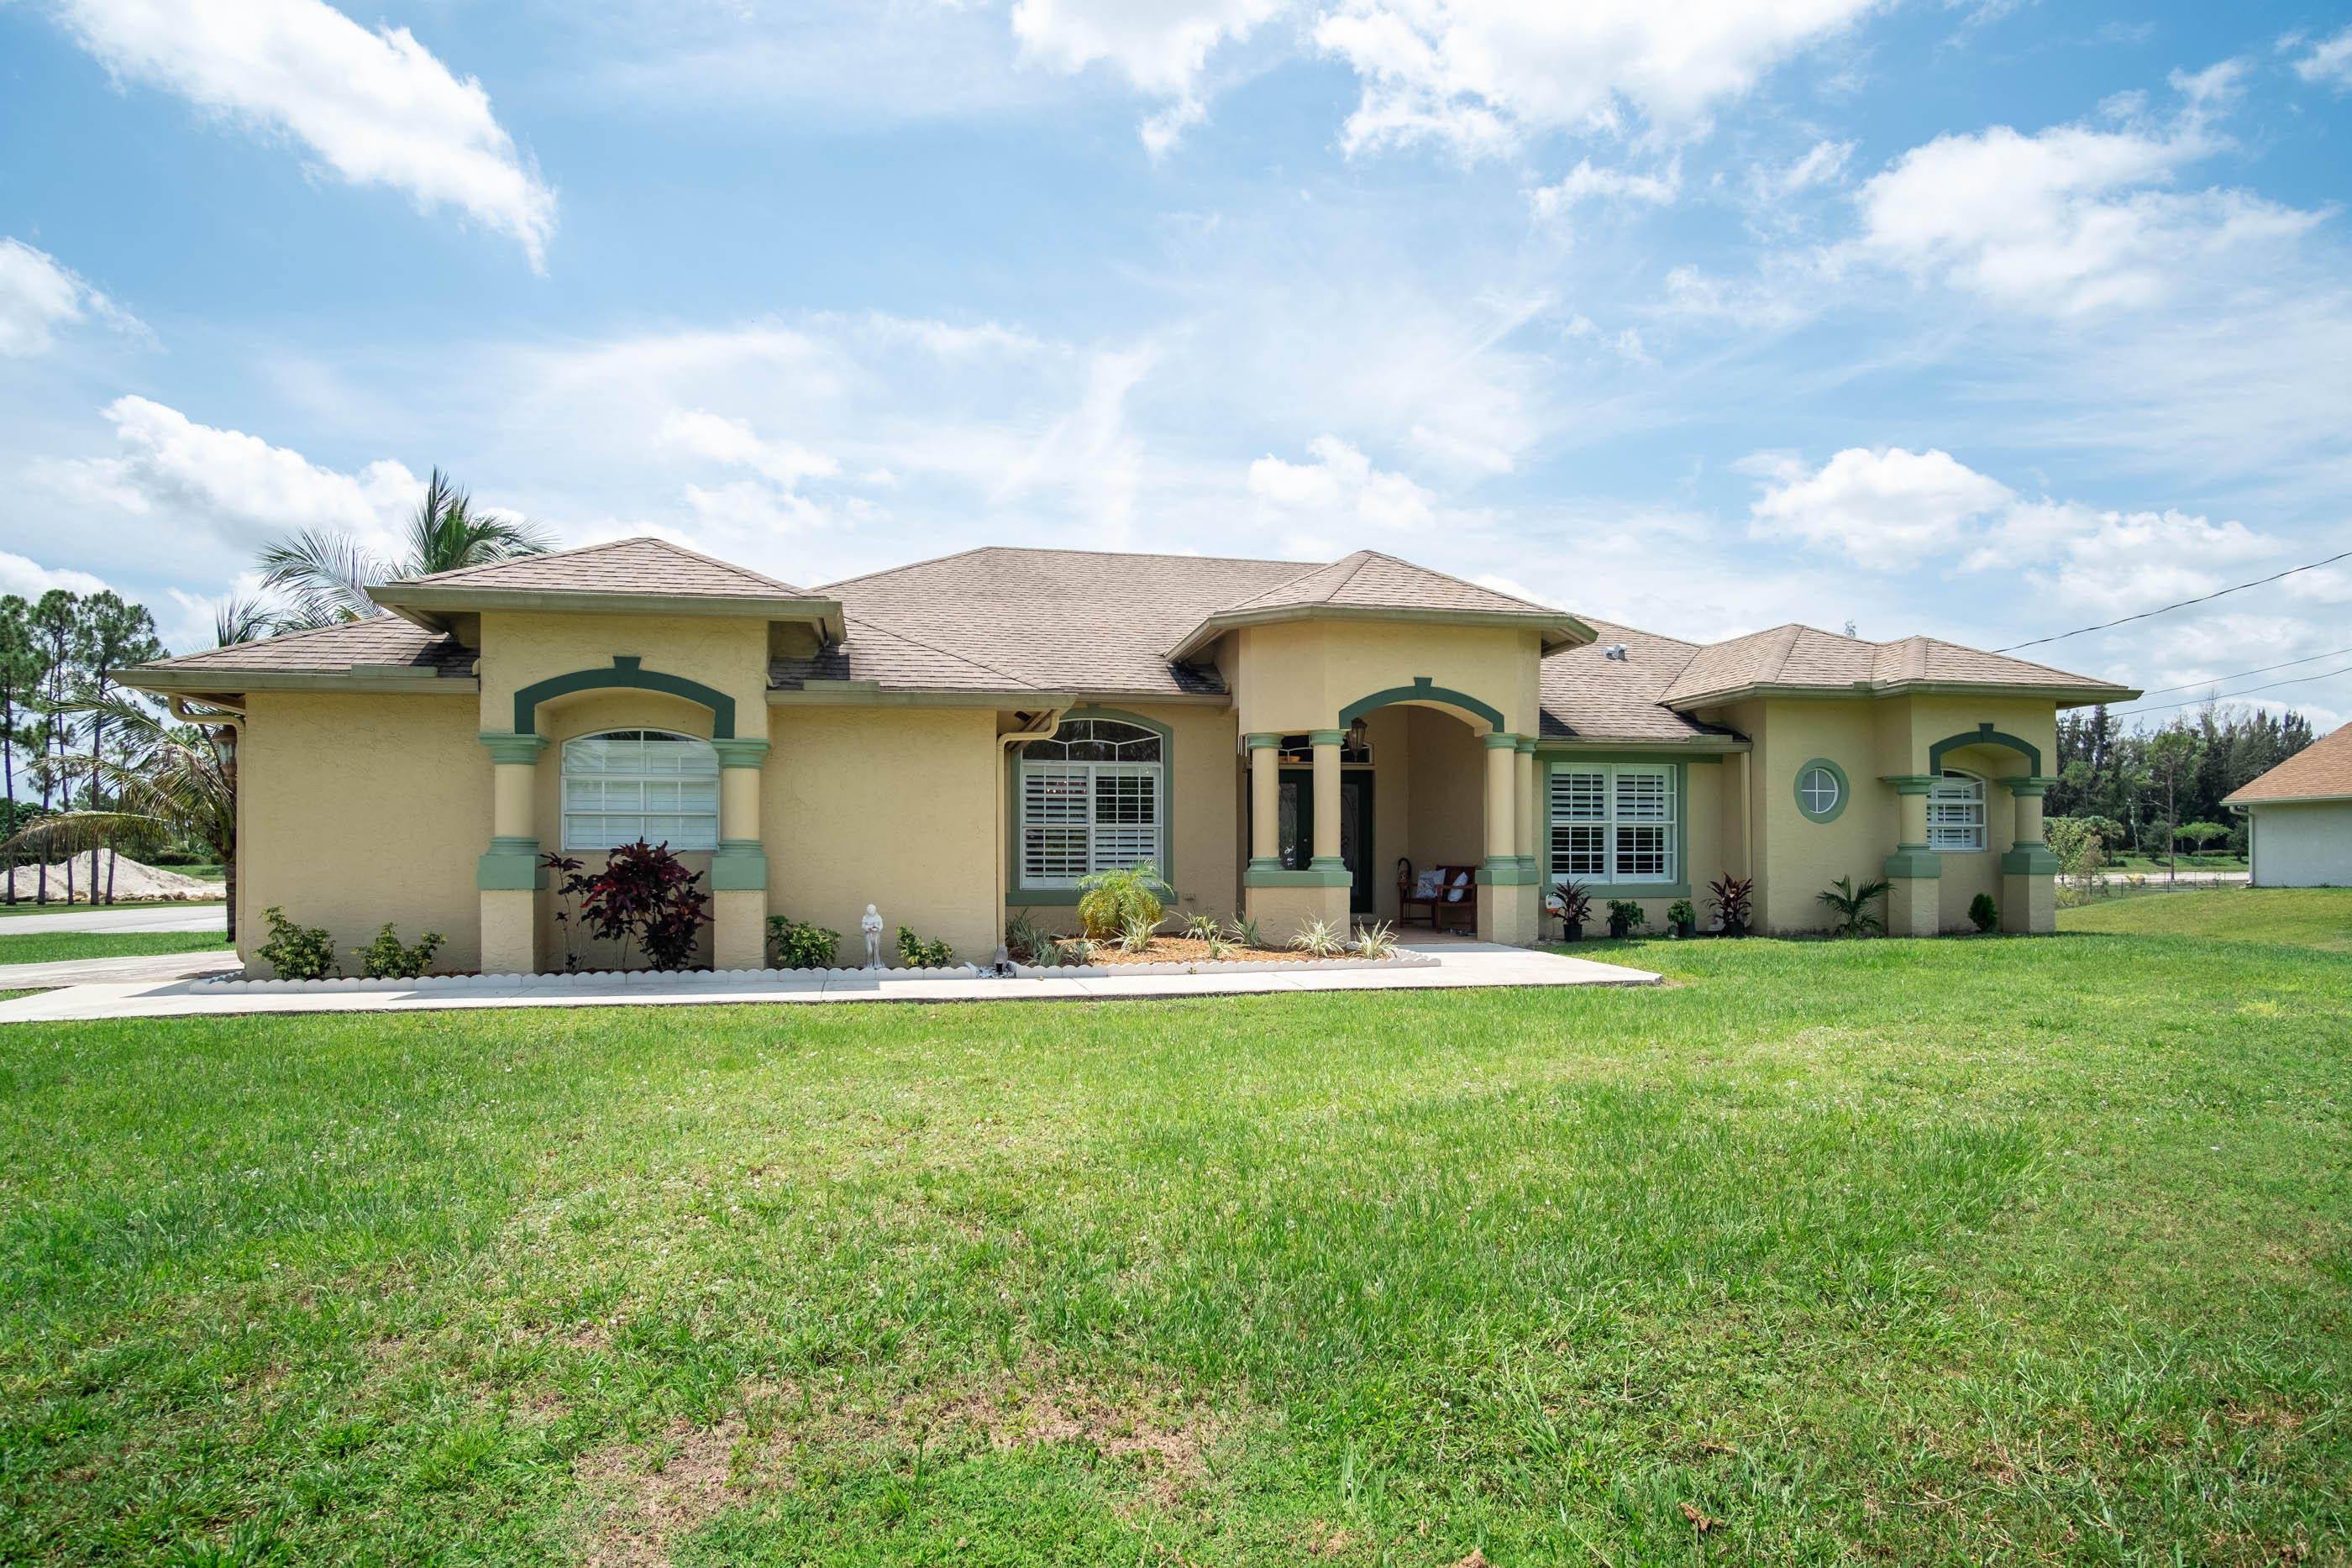 11546 61st Street, West Palm Beach, Florida 33412, 3 Bedrooms Bedrooms, ,2.1 BathroomsBathrooms,Single Family,For Sale,61st,RX-10531849